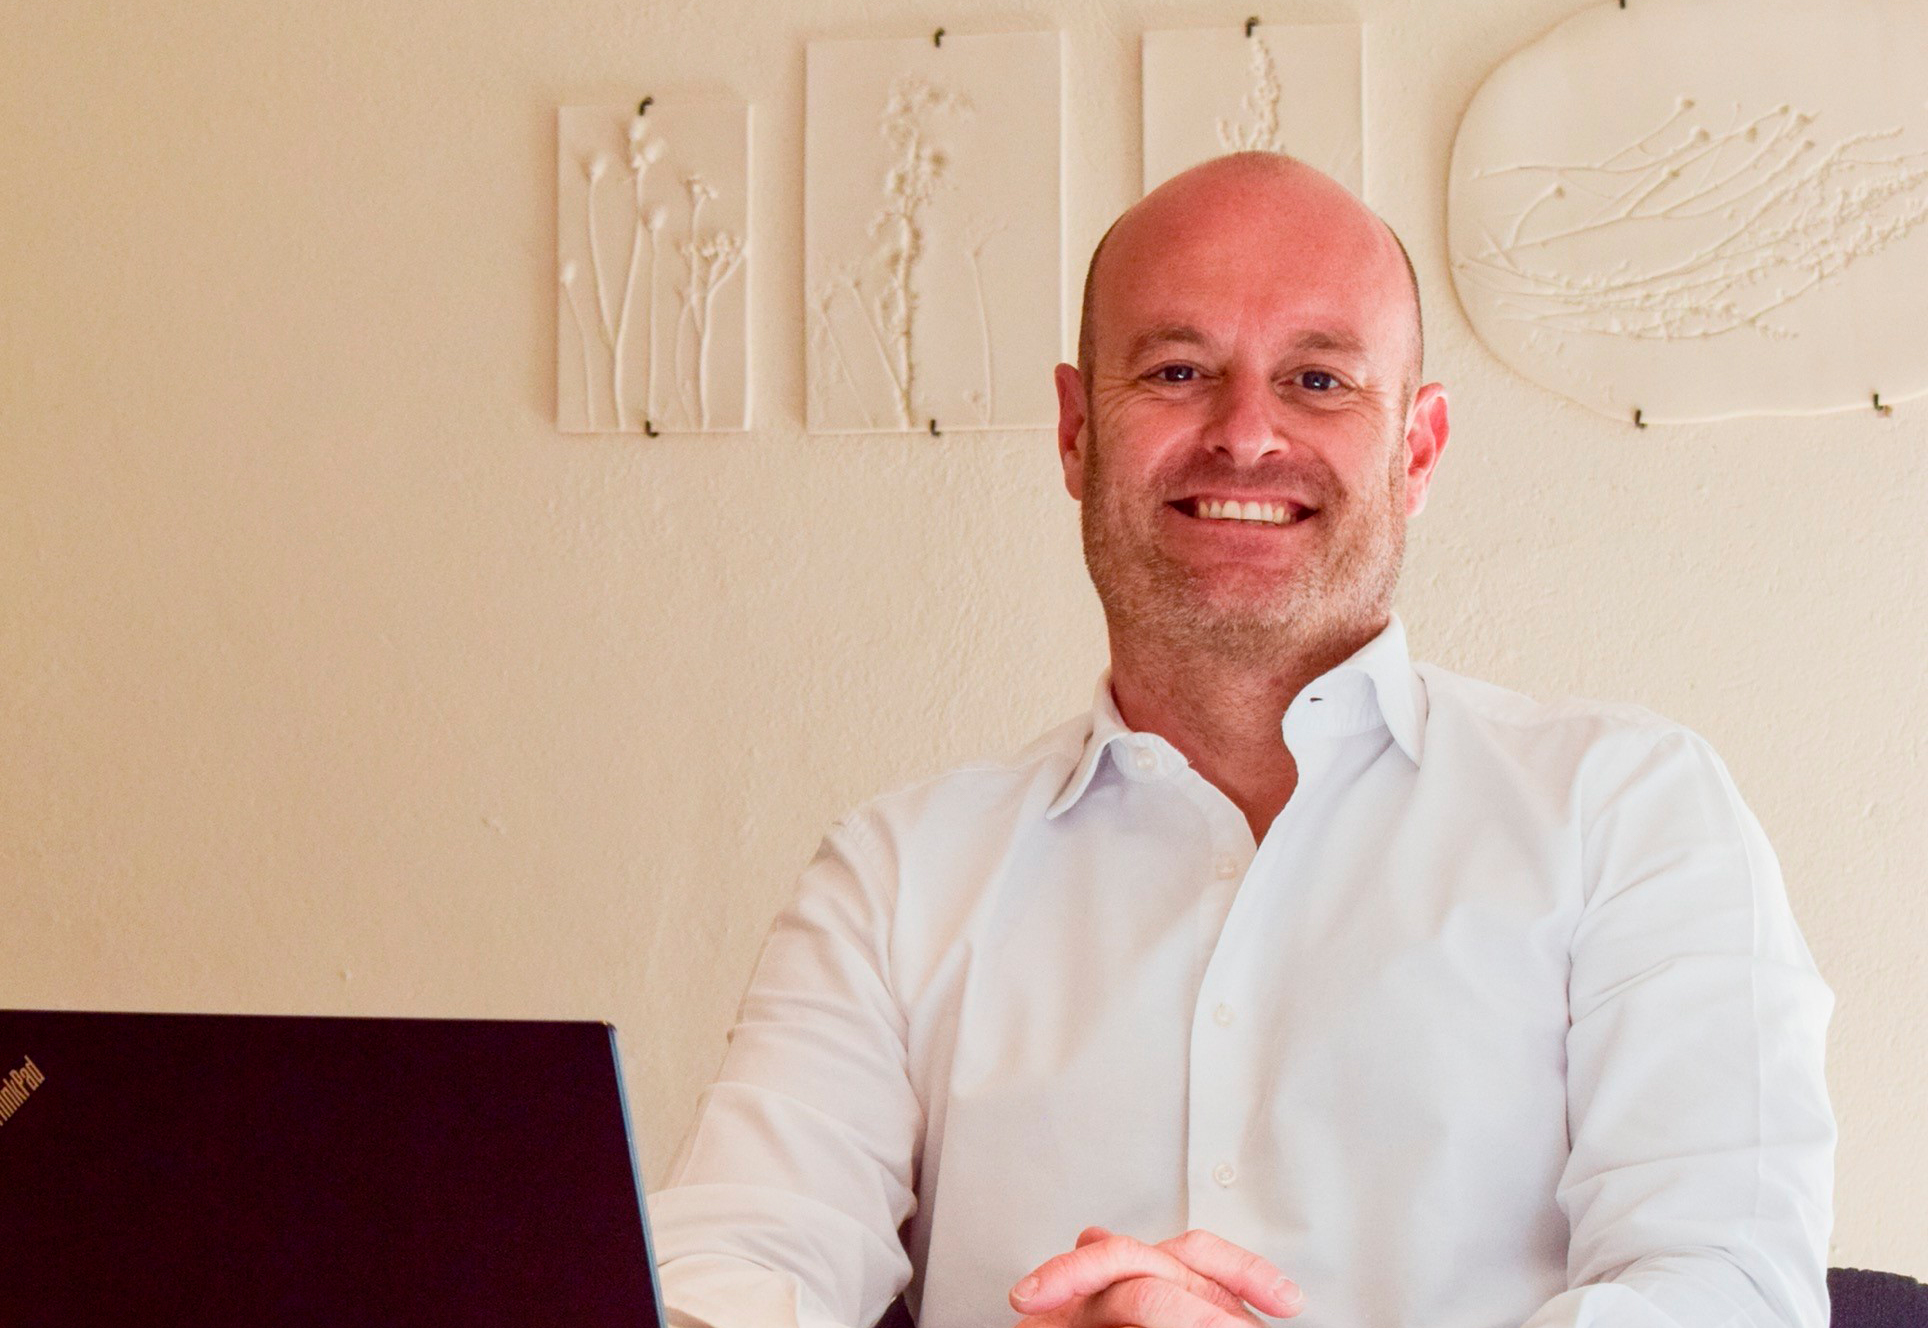 Wilco Slabbekoorn joins Nets from Arvato